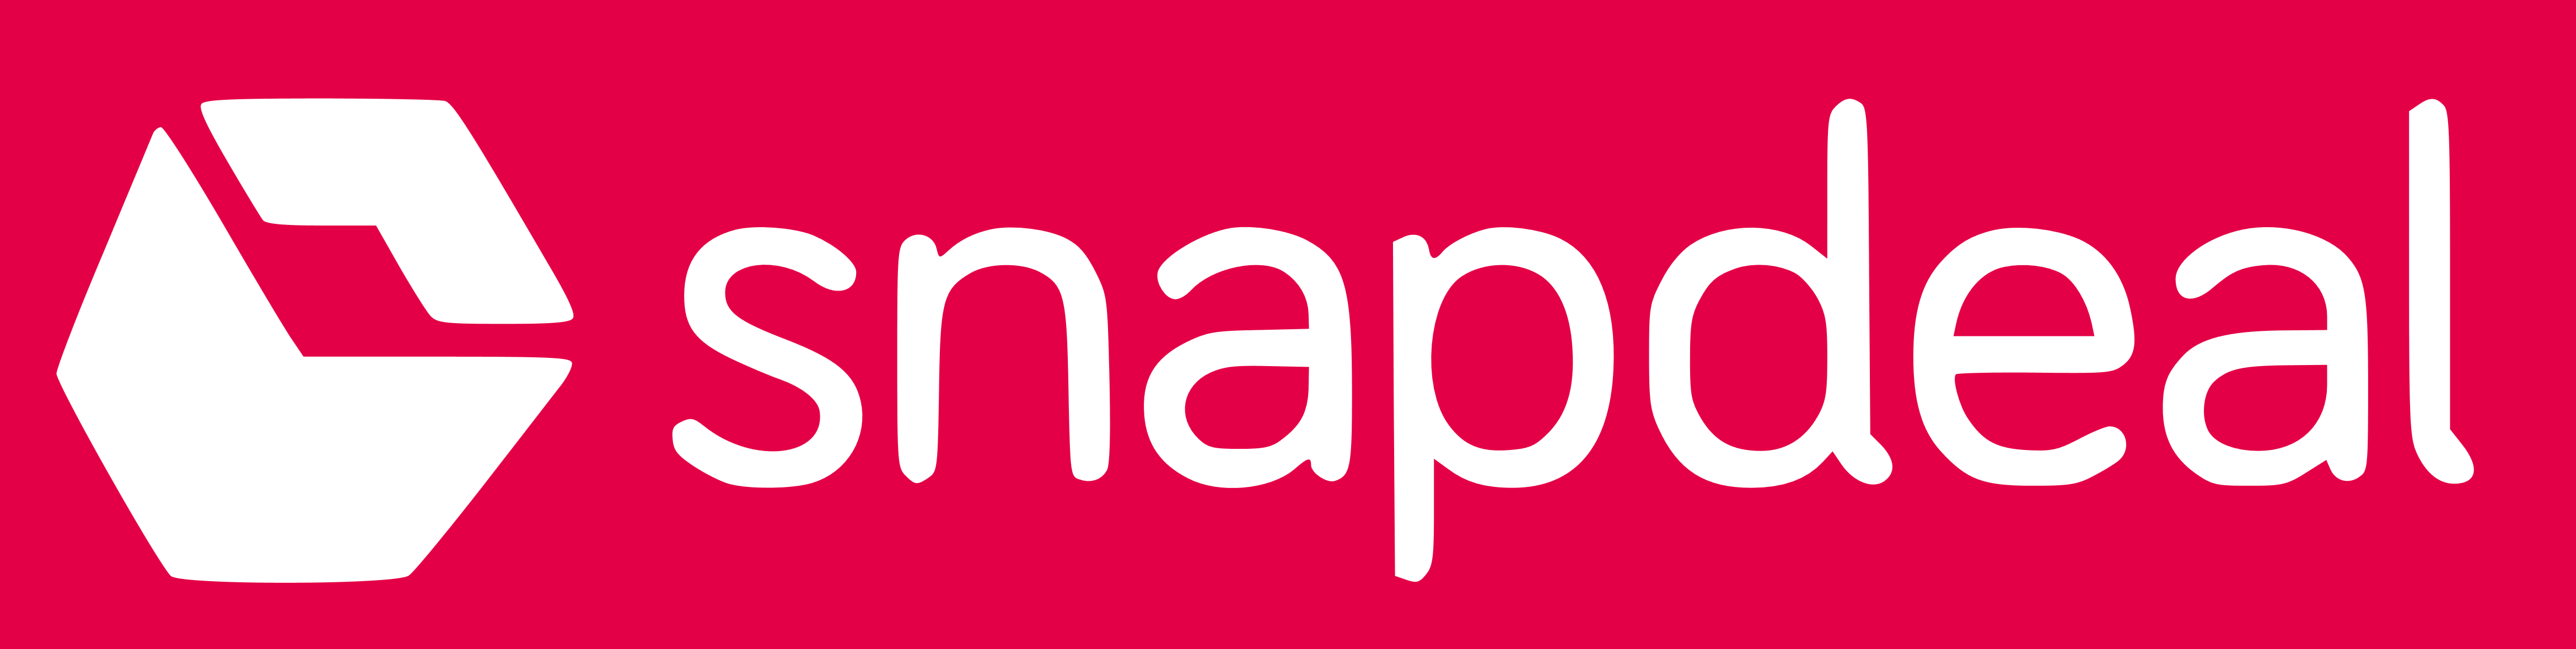 Image result for snapdeal logo png